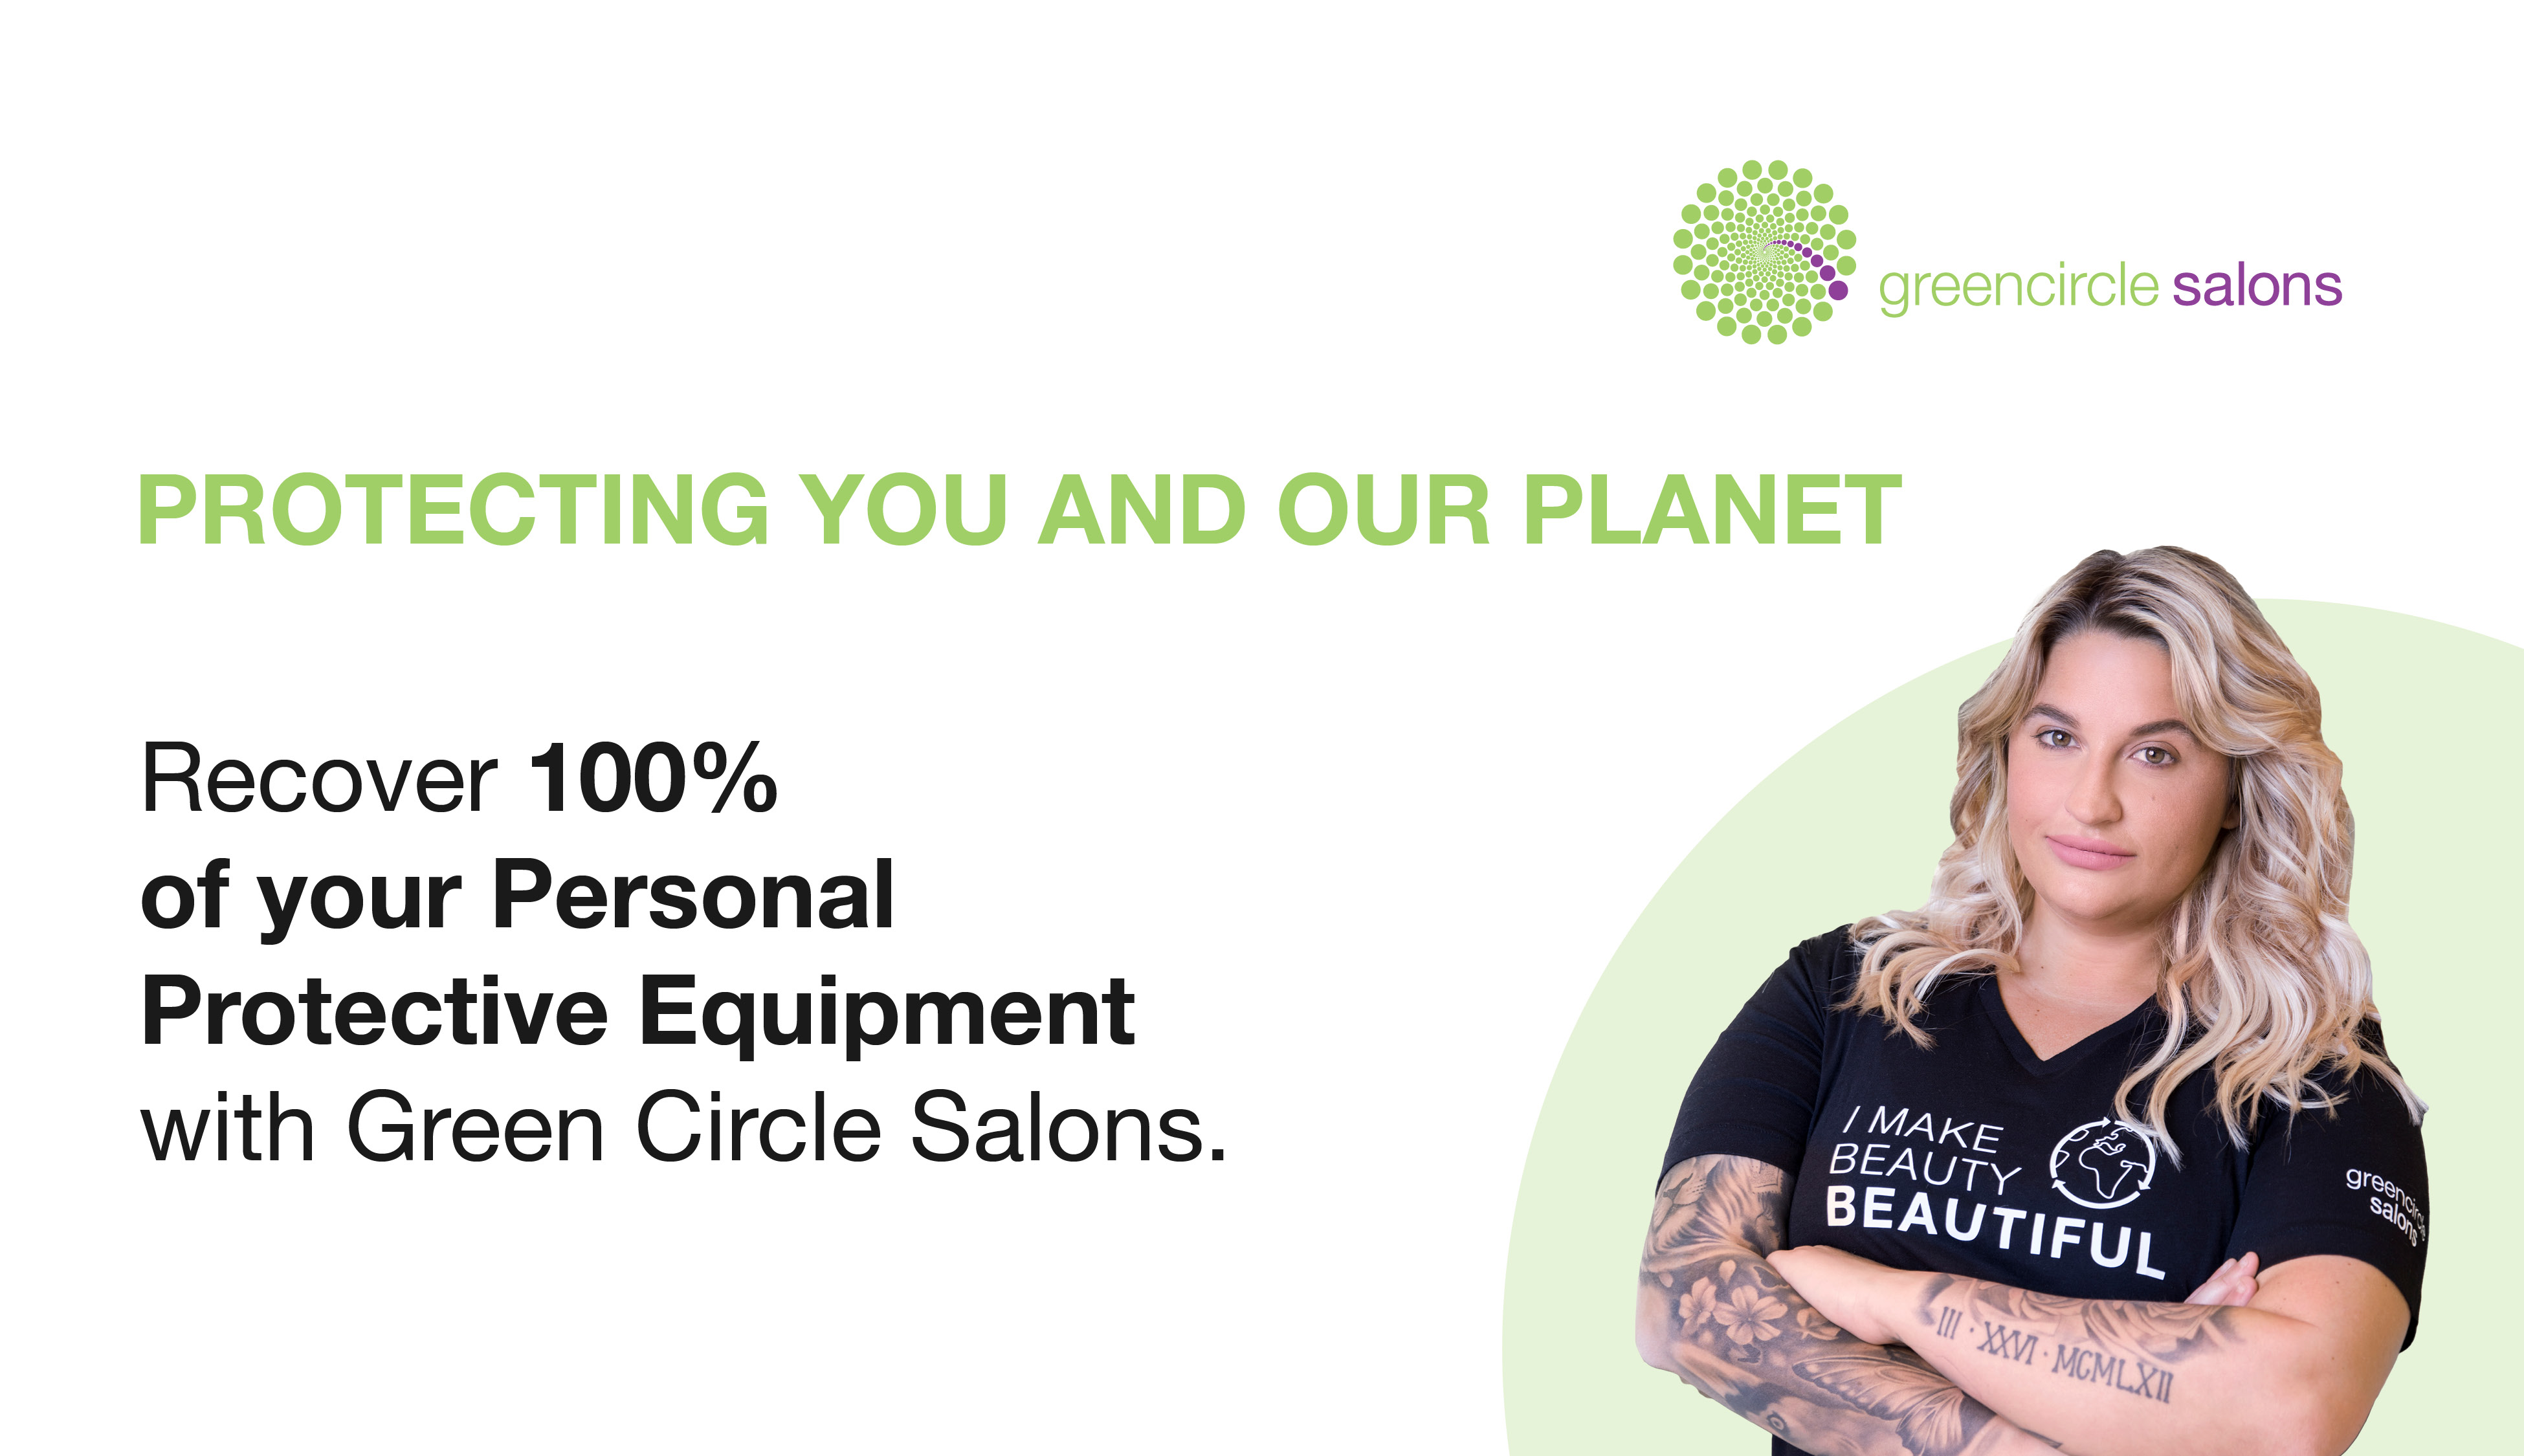 Recover 100% of your Personal Protective Equipment with Green Circle Salons